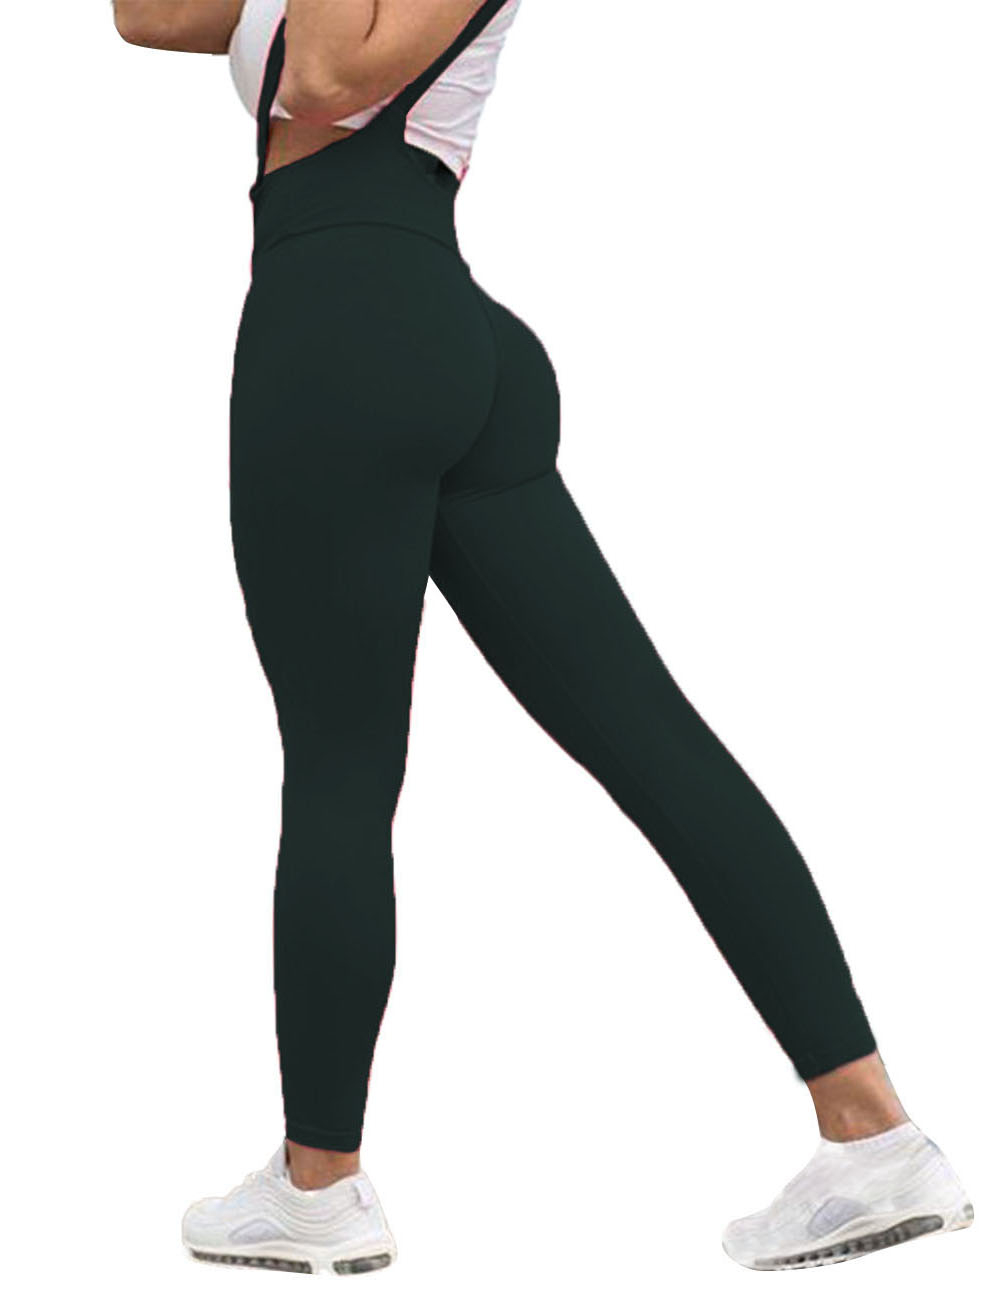 //cdn.affectcloud.com/hexinfashion/upload/imgs/Sportswear/Yoga_Legging/YD190088-GN4/YD190088-GN4-201911025dbd2b40b07c6.jpg